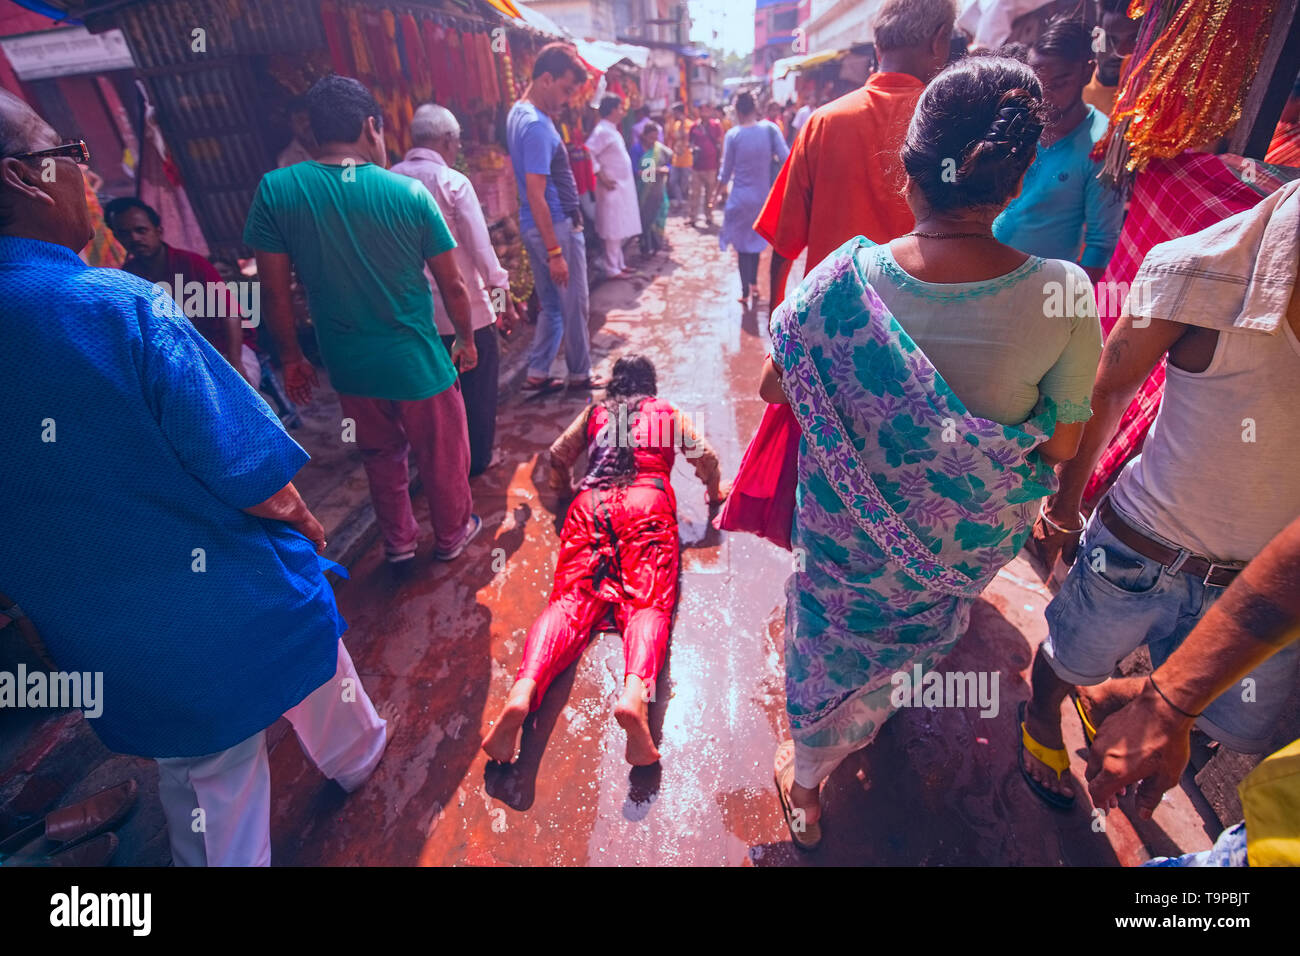 Bengalee, year end,female worshiper,stretching,on Kali temple,hot pavement, under, mid-day,Sun,for ,piety,Kalighat,Kolkata,India. Stock Photo